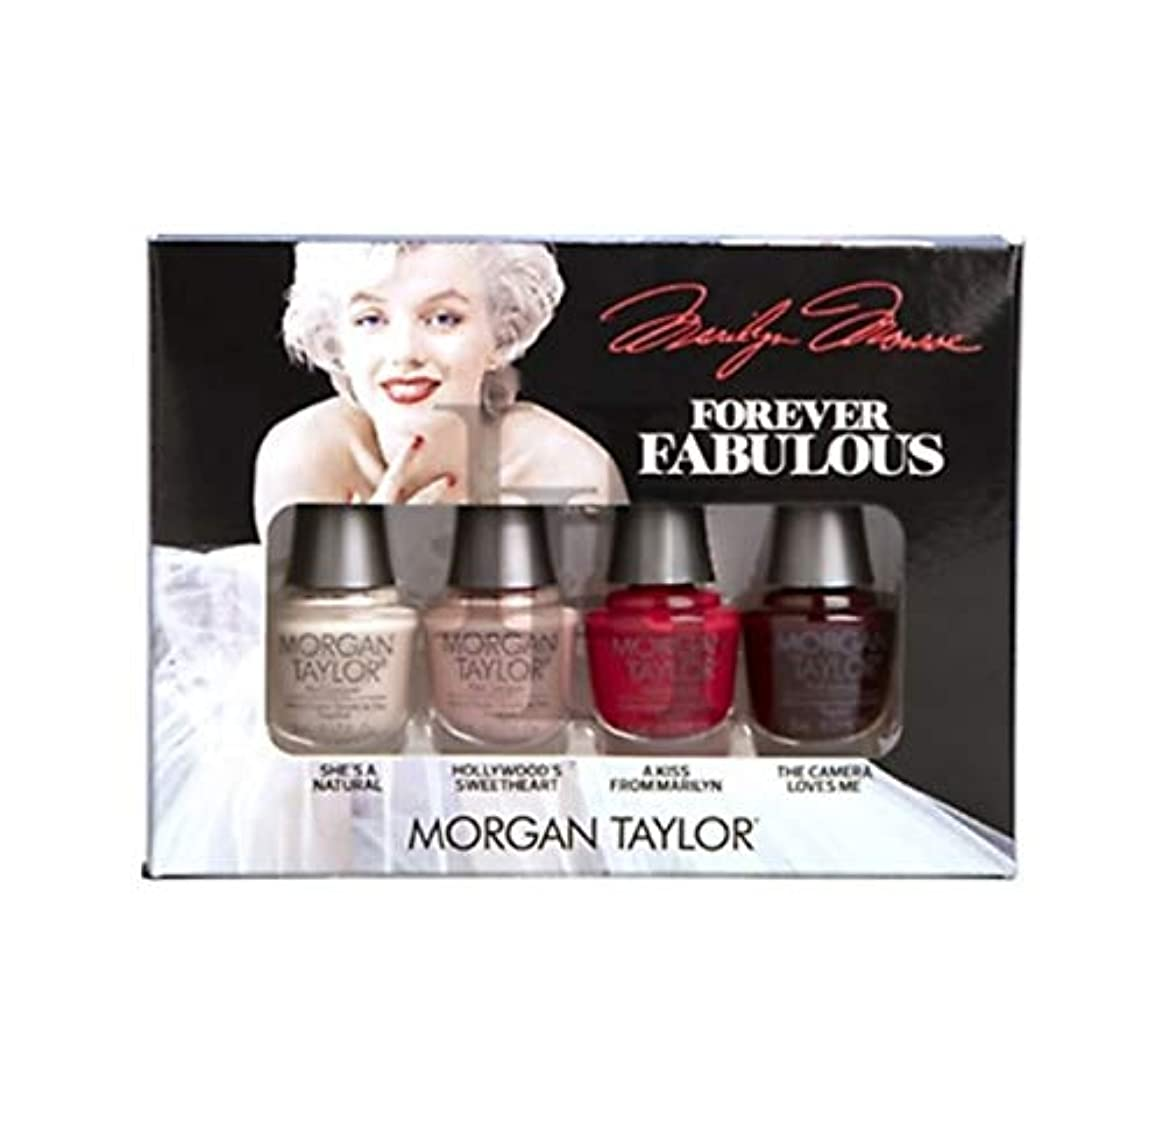 頬いちゃつくアパルMorgan Taylor - Forever Fabulous Marilyn Monroe Mini 4 Pack - 5 mL / 0.17 oz